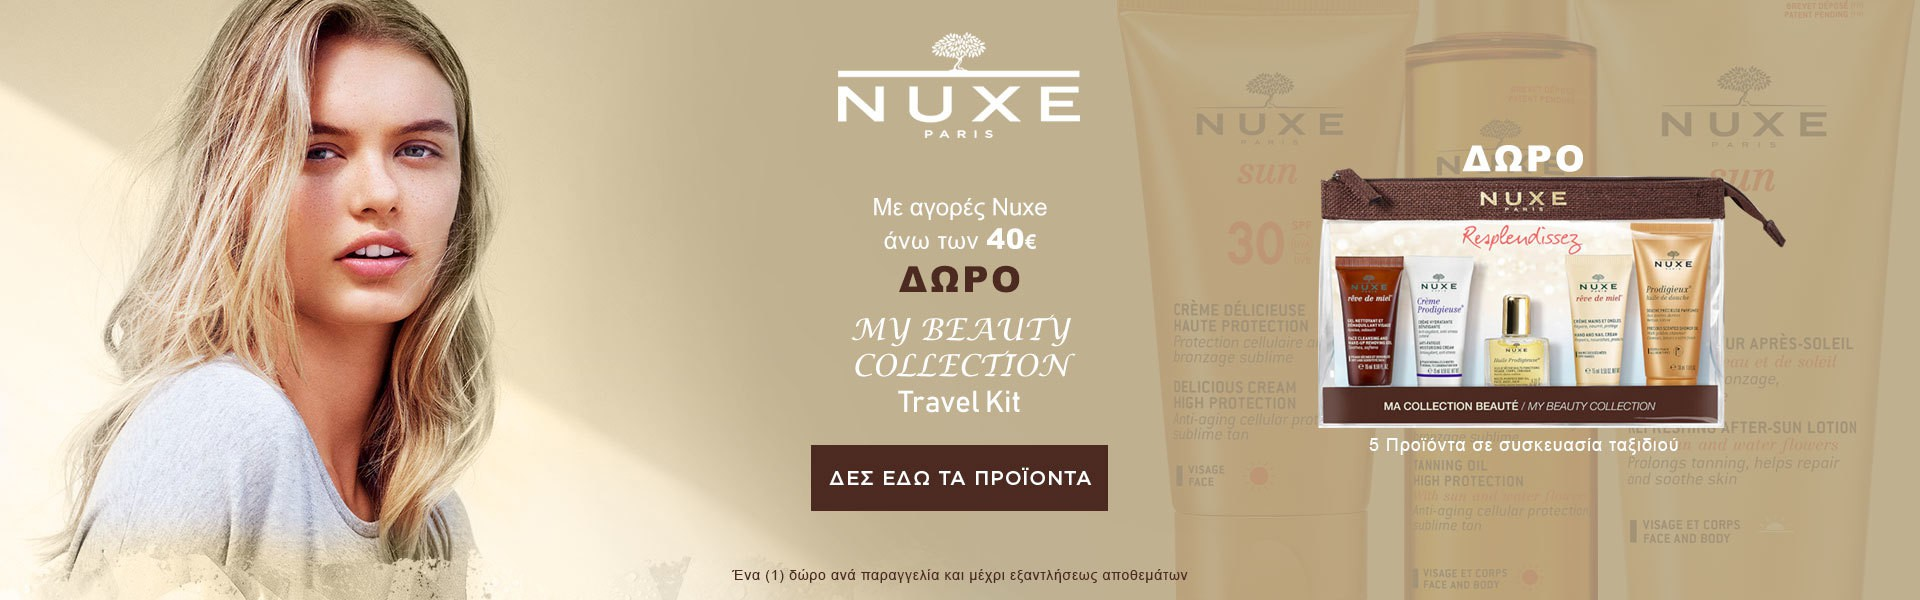 Nuxe my beauty collection 1920x600